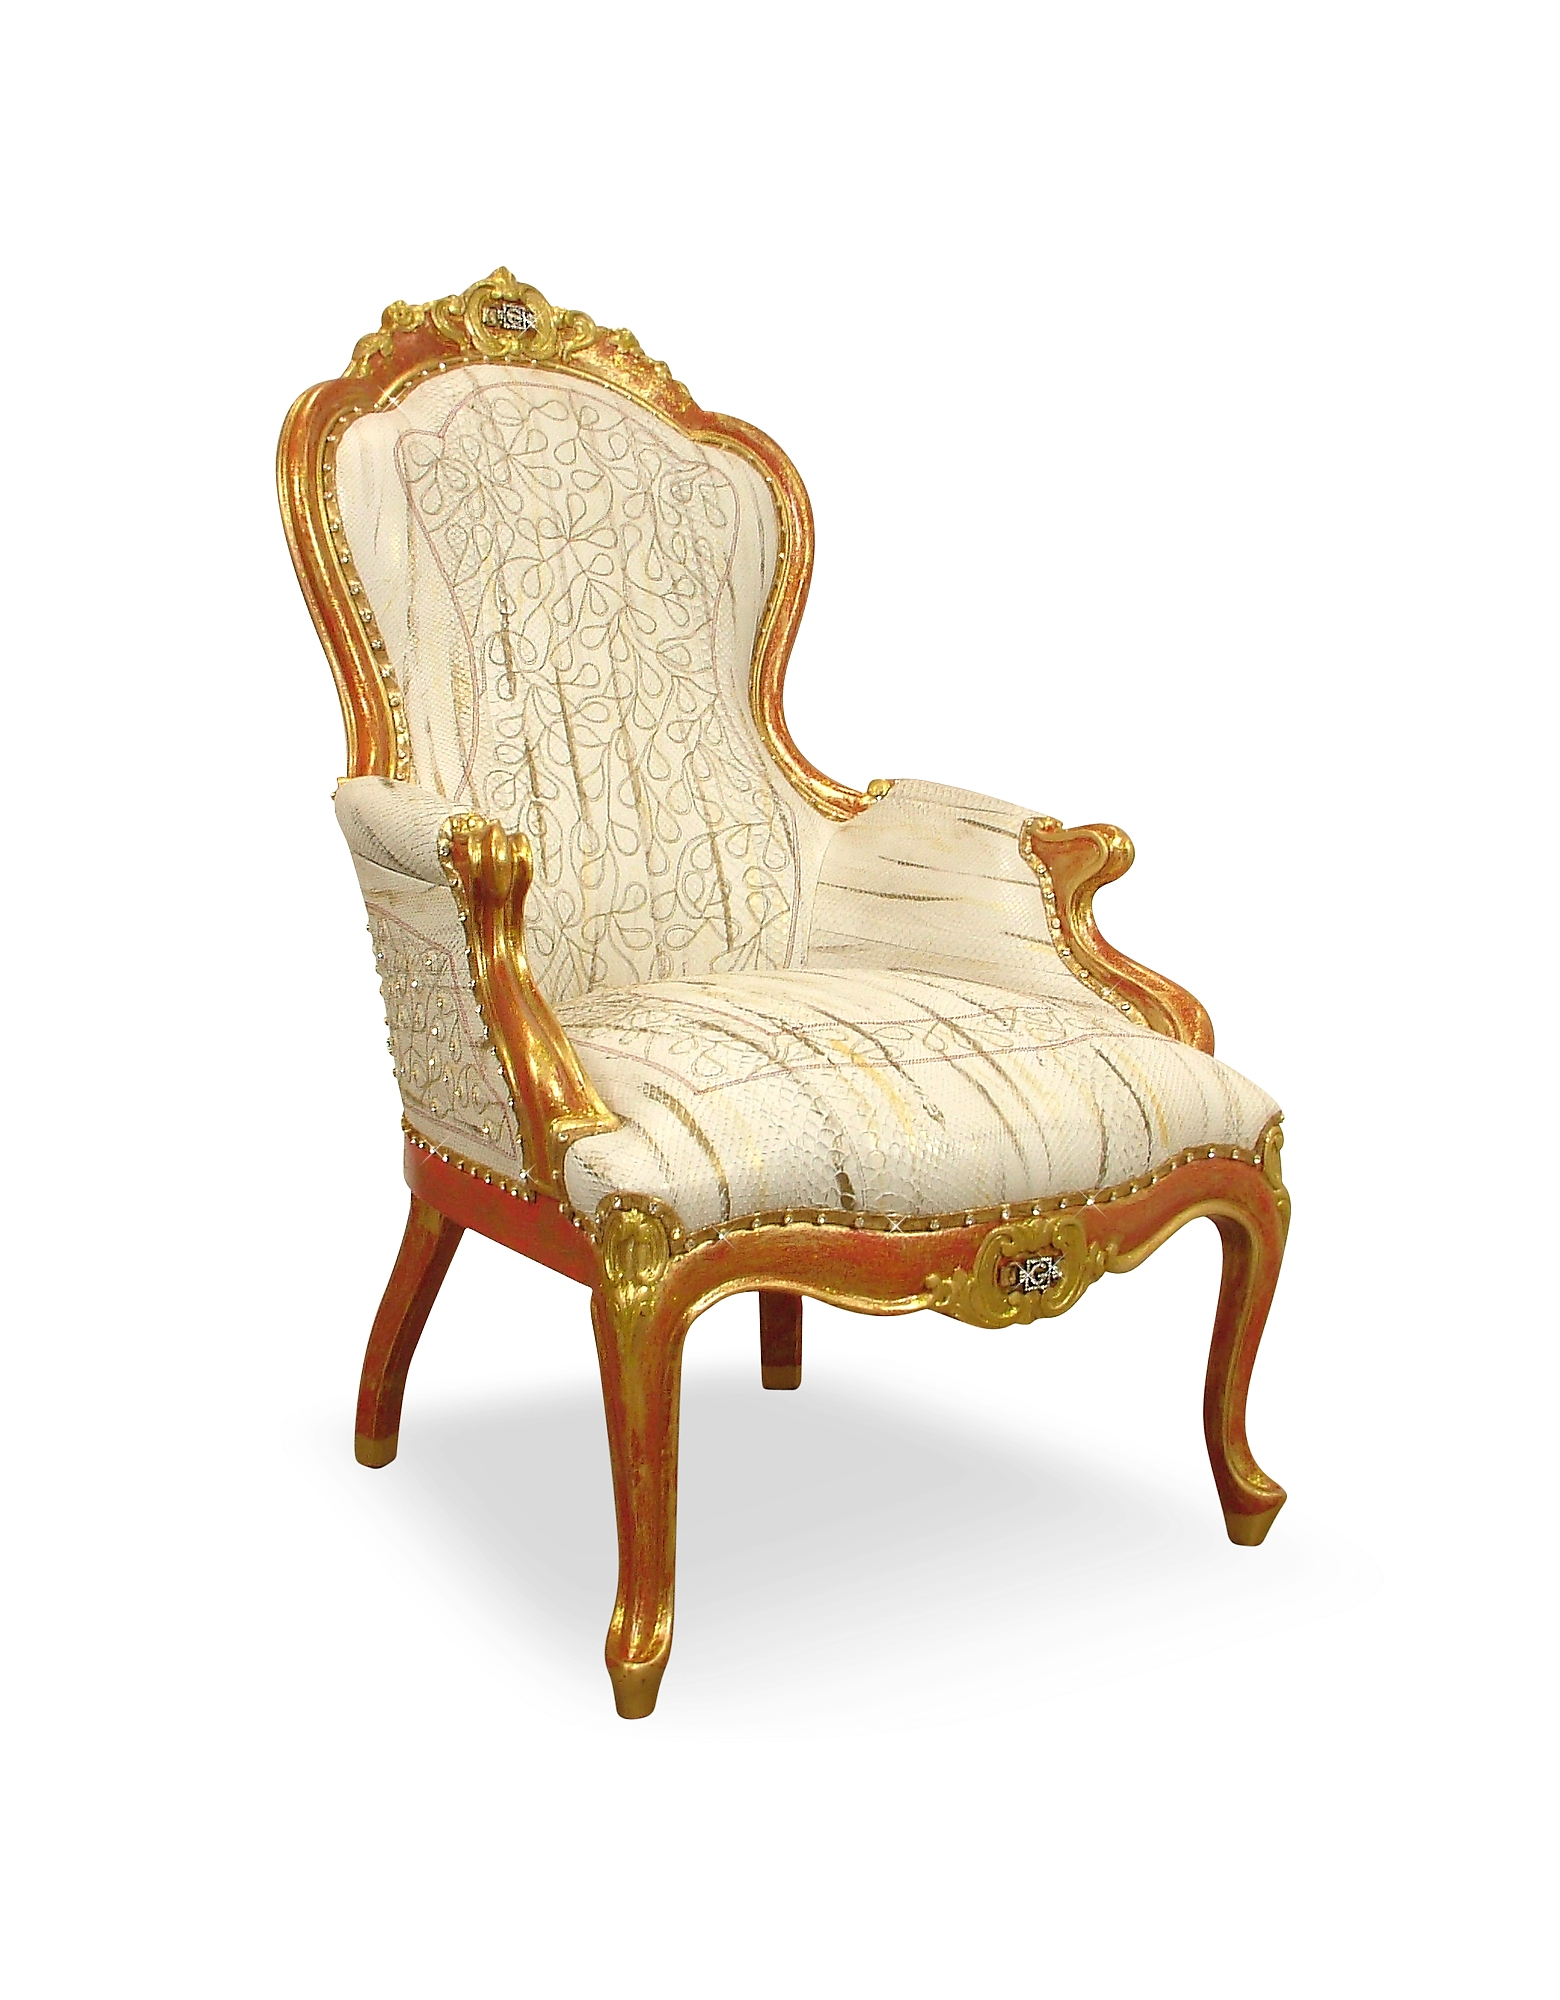 Ghibli Kitchen & Dining, Cream Embroided Reptile Leather Louis Philippe Armchair